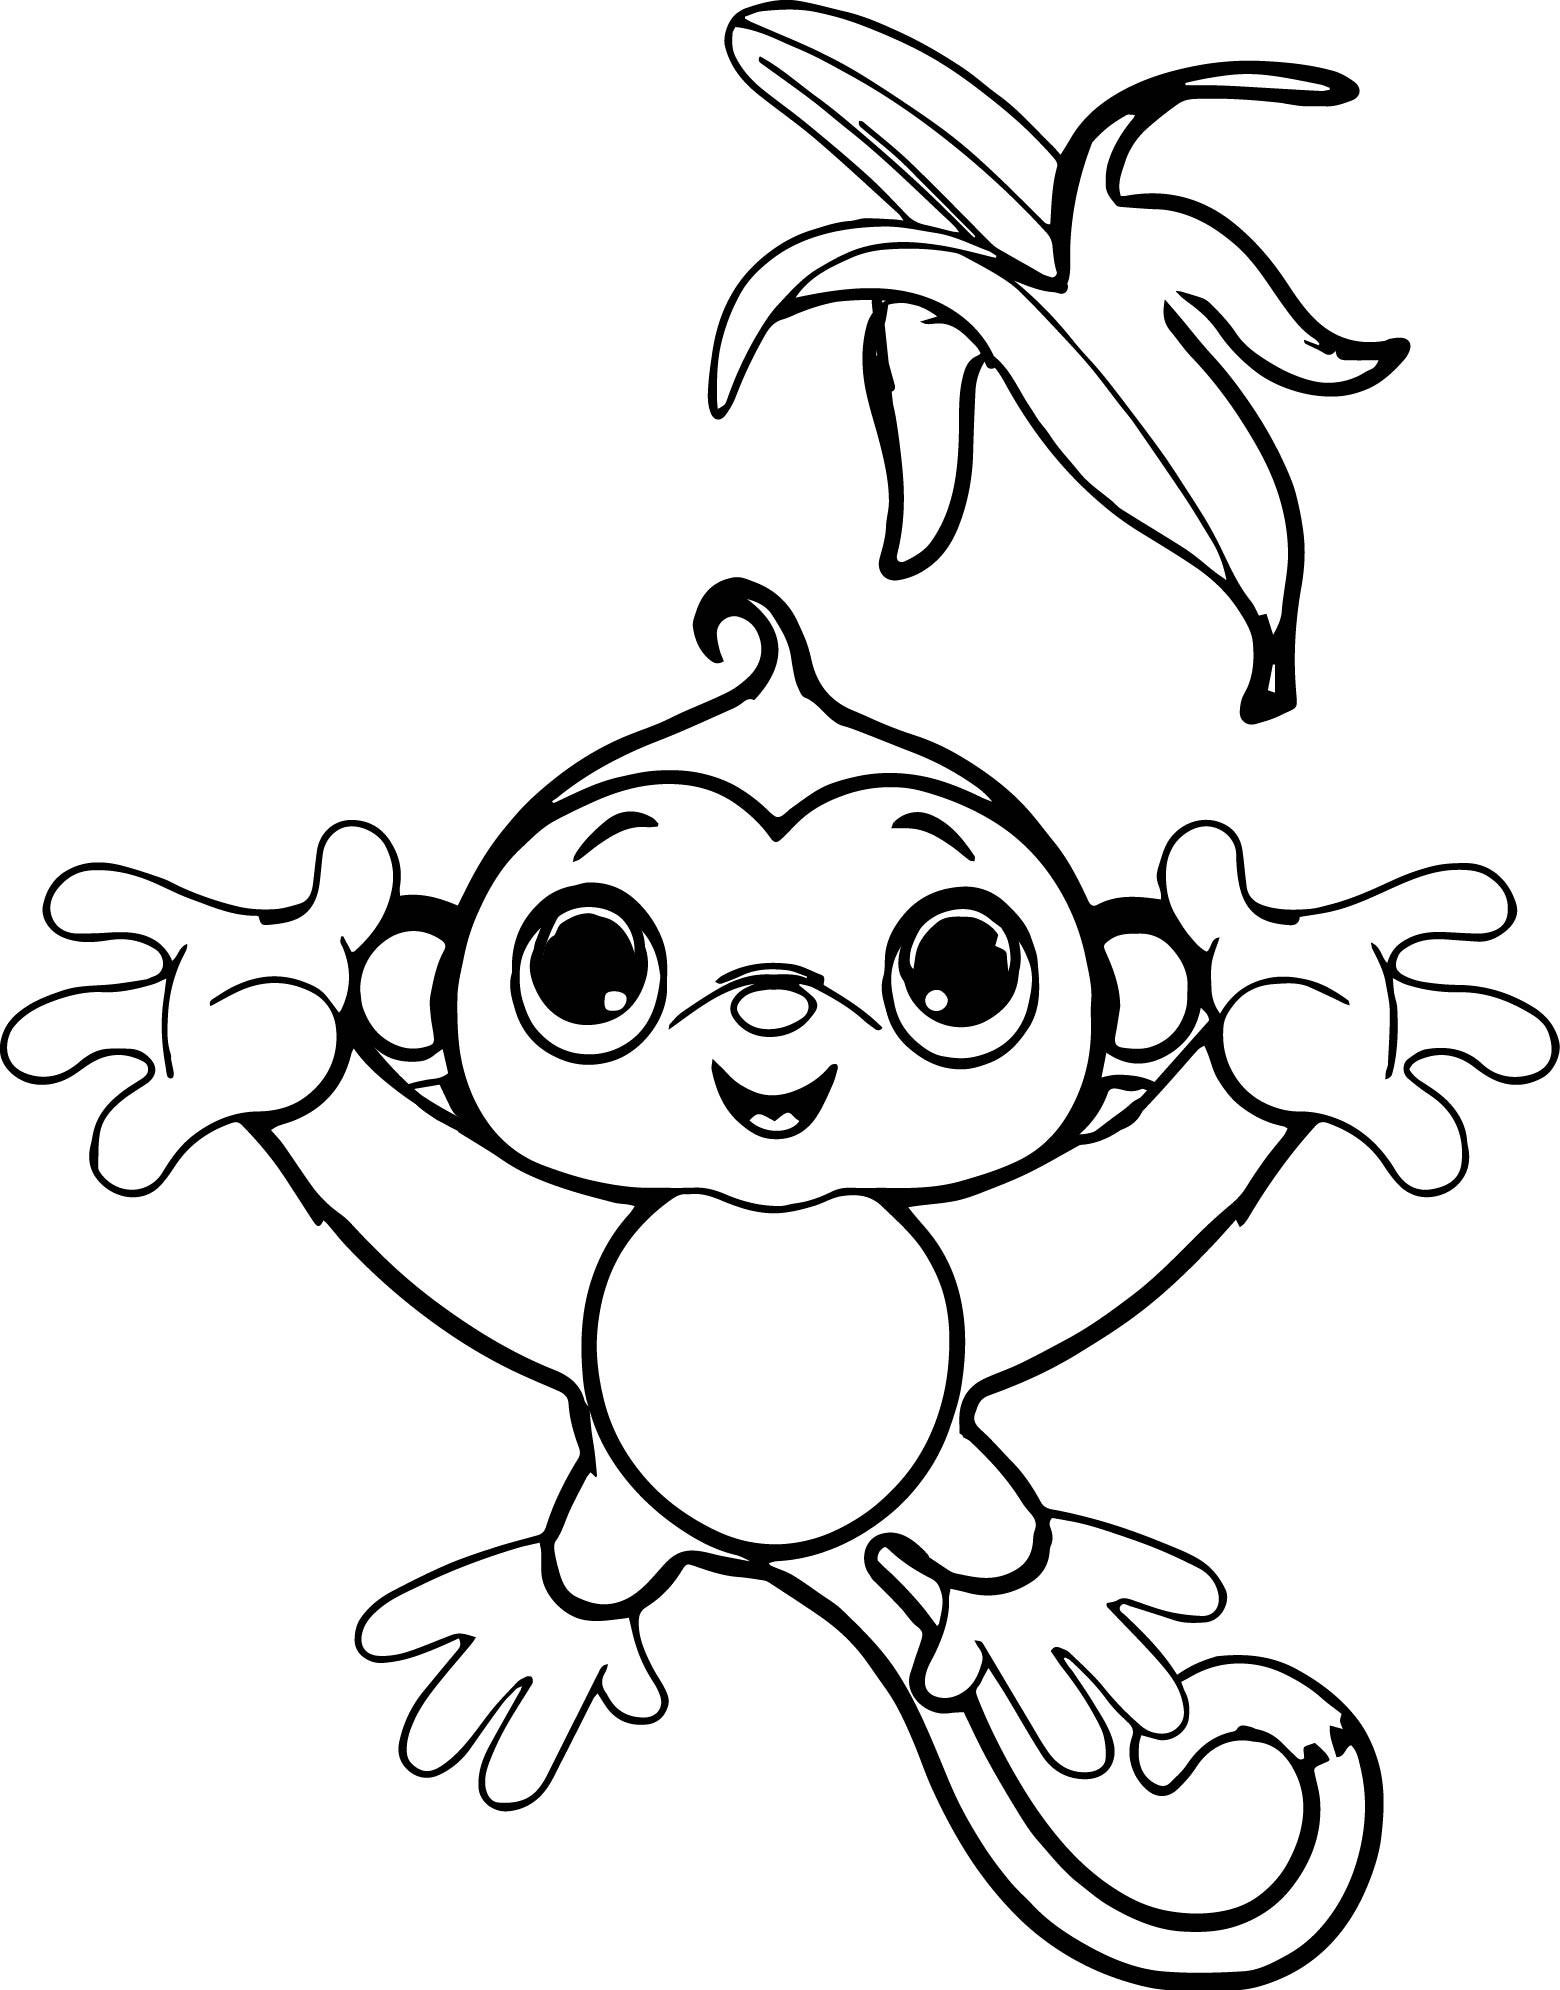 1560x1990 Fresh Monkey Page To Color Collection Printable Coloring Sheet